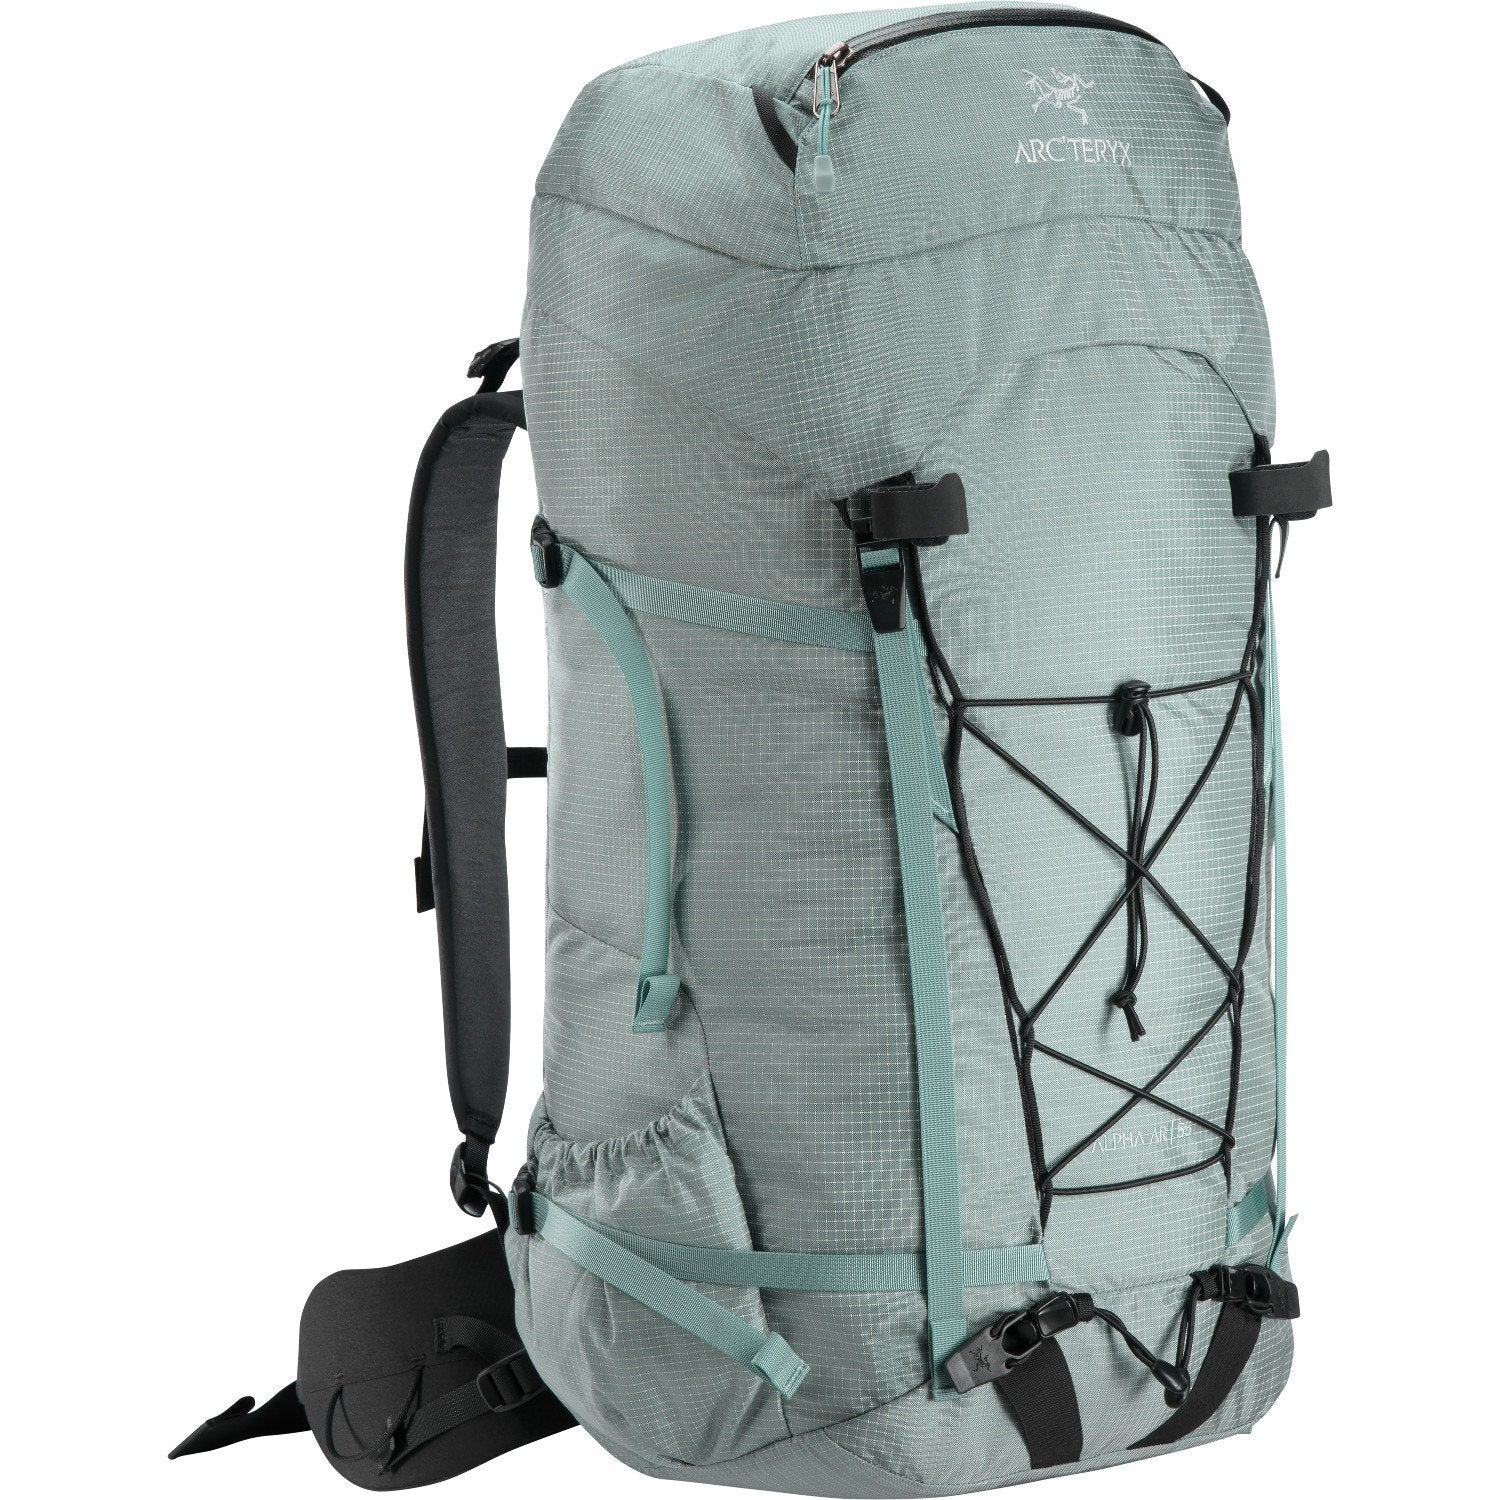 Arc'Teryx Alpha AR 55 in grey showing elastics on rear and ice axe holders